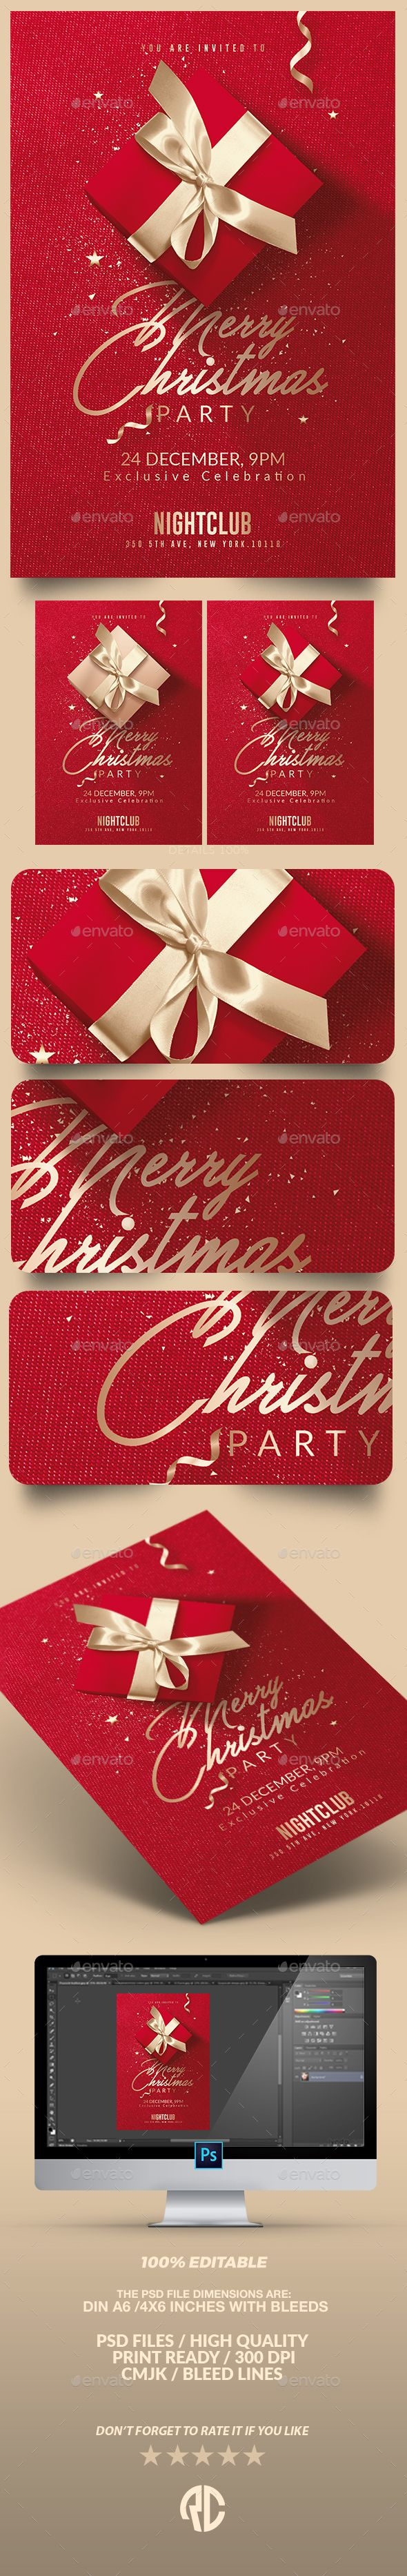 Amazing ! Red Christmas Party | Invitation Flyer Template - Print Templates  #christmas #flyer #invitation #templates #envatomarket